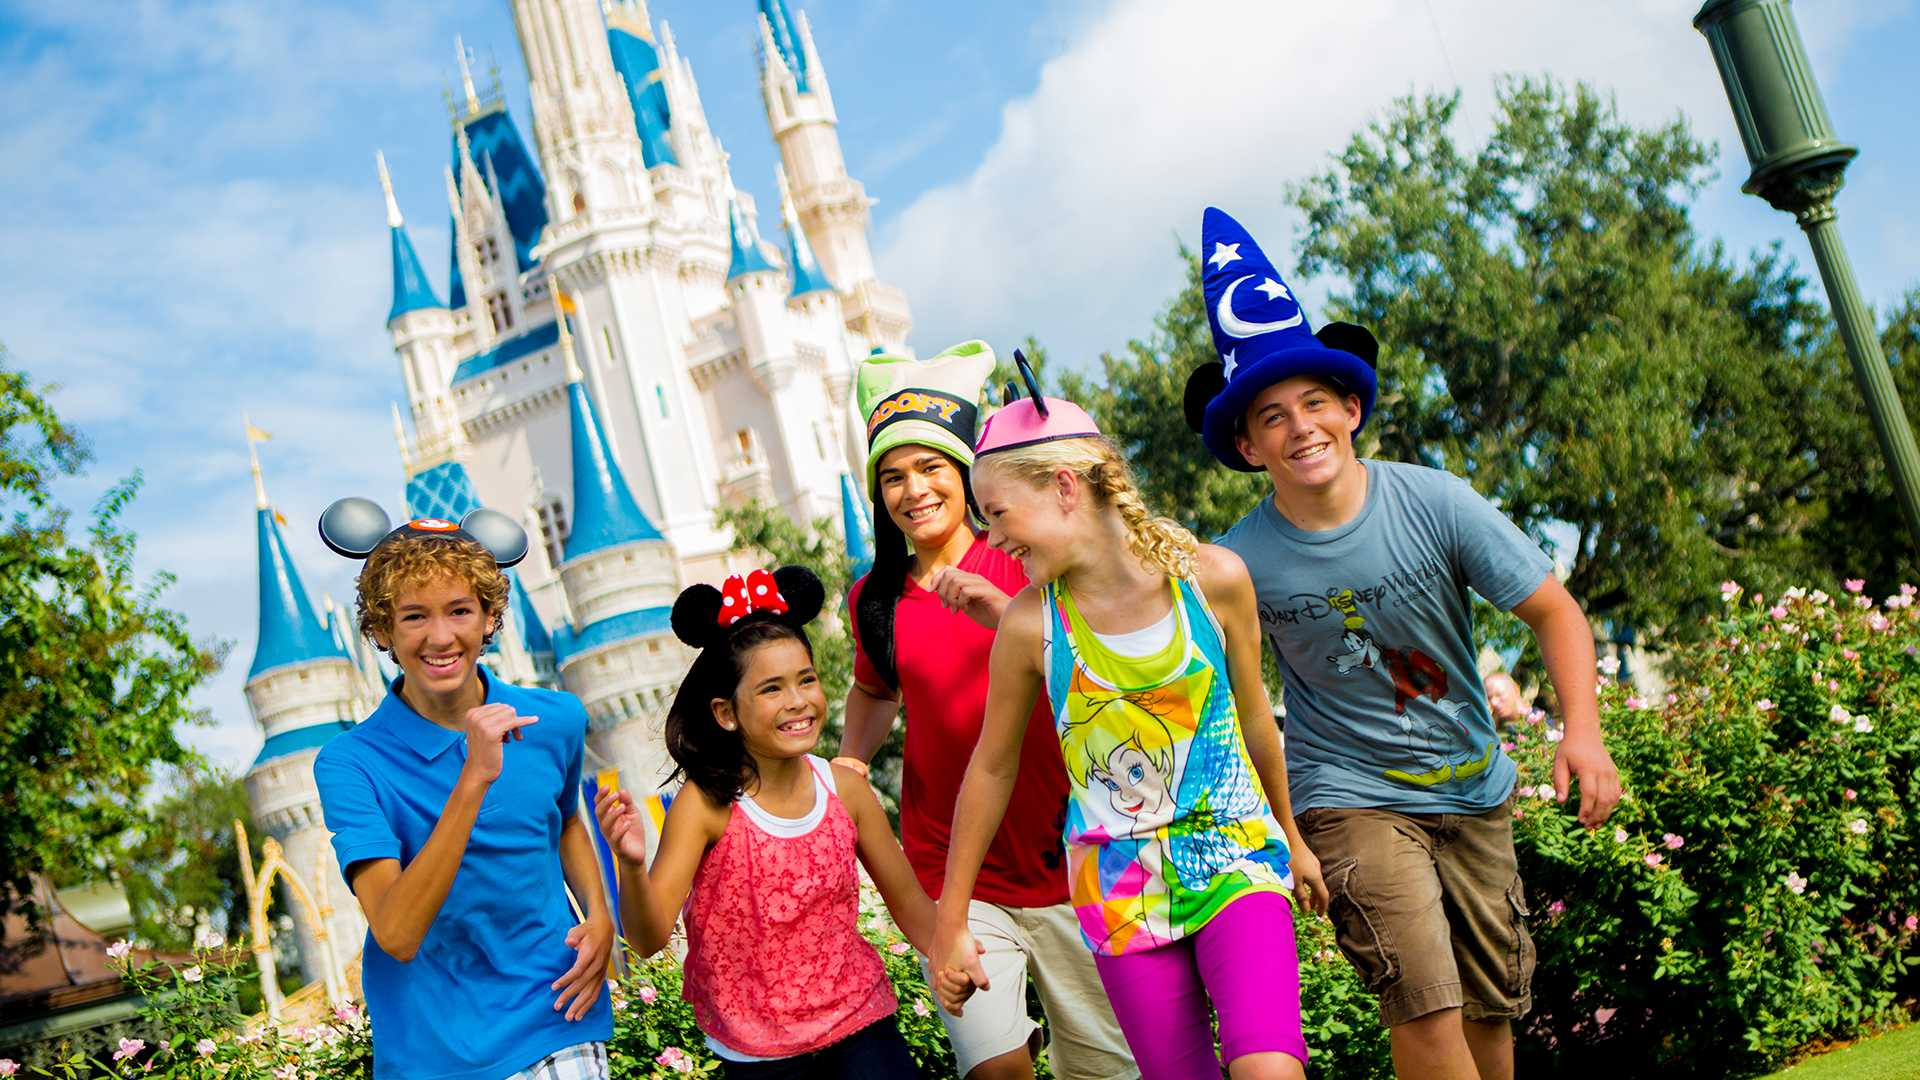 Disney Discount Tickets & Hotels — Vacation Package Offer. Undercover Tourist offers discount tickets and hotel packages to the Walt Disney World® Resort, Disneyland ® Resort, Universal Orlando Resort TM, Universal Studios Hollywood, SeaWorld Parks and LEGOLAND Florida and California.